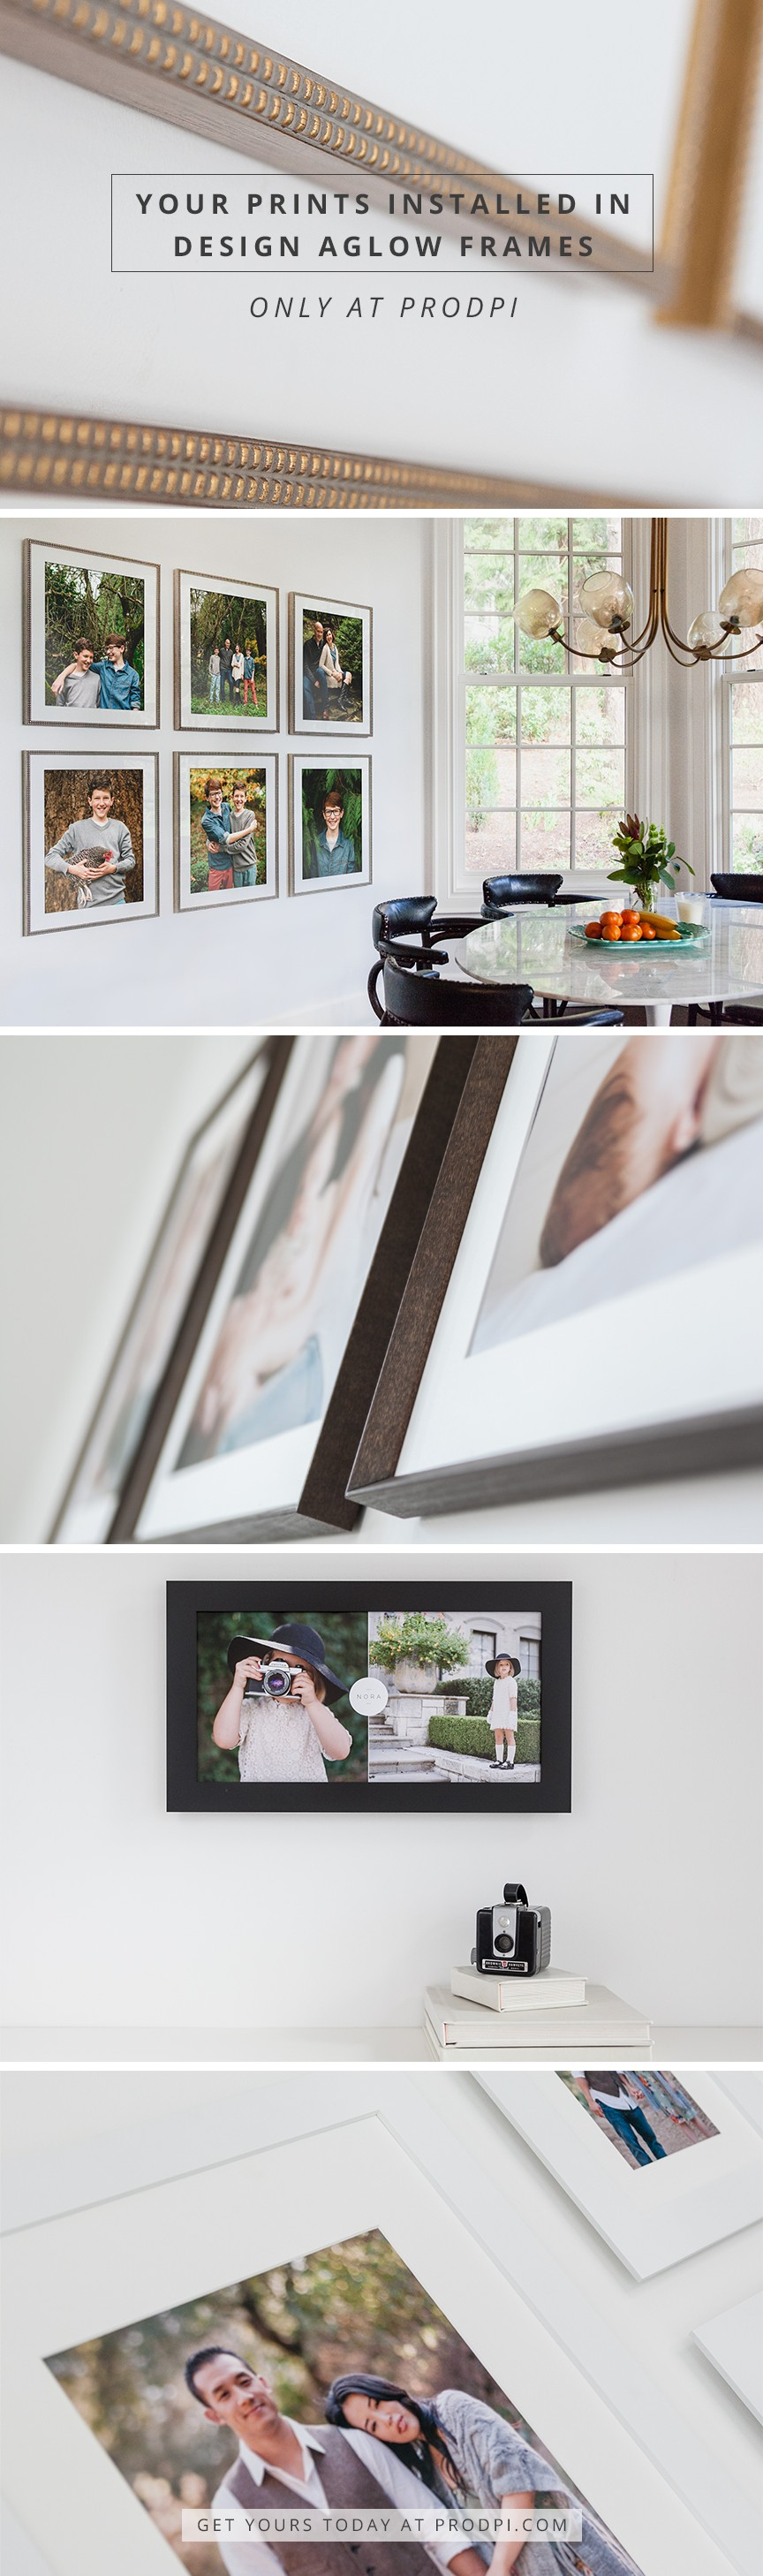 Your prints installed in Design Aglow frames delivered straight to